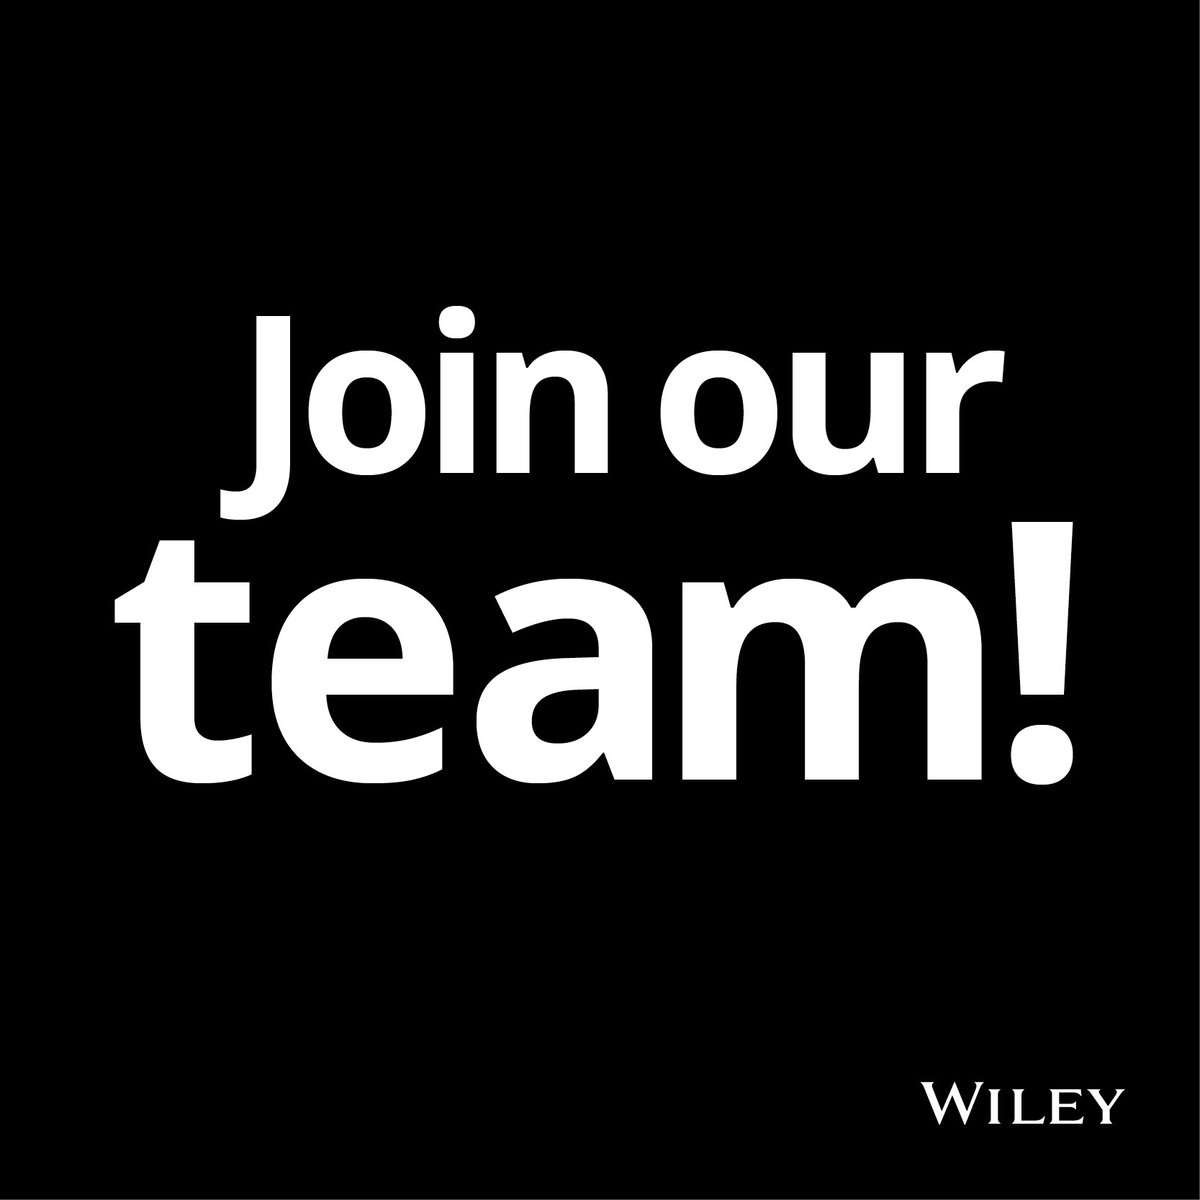 wiley on twitter do you have experience in journal production wiley on twitter do you have experience in journal production we re looking for a sr production editor for our malden